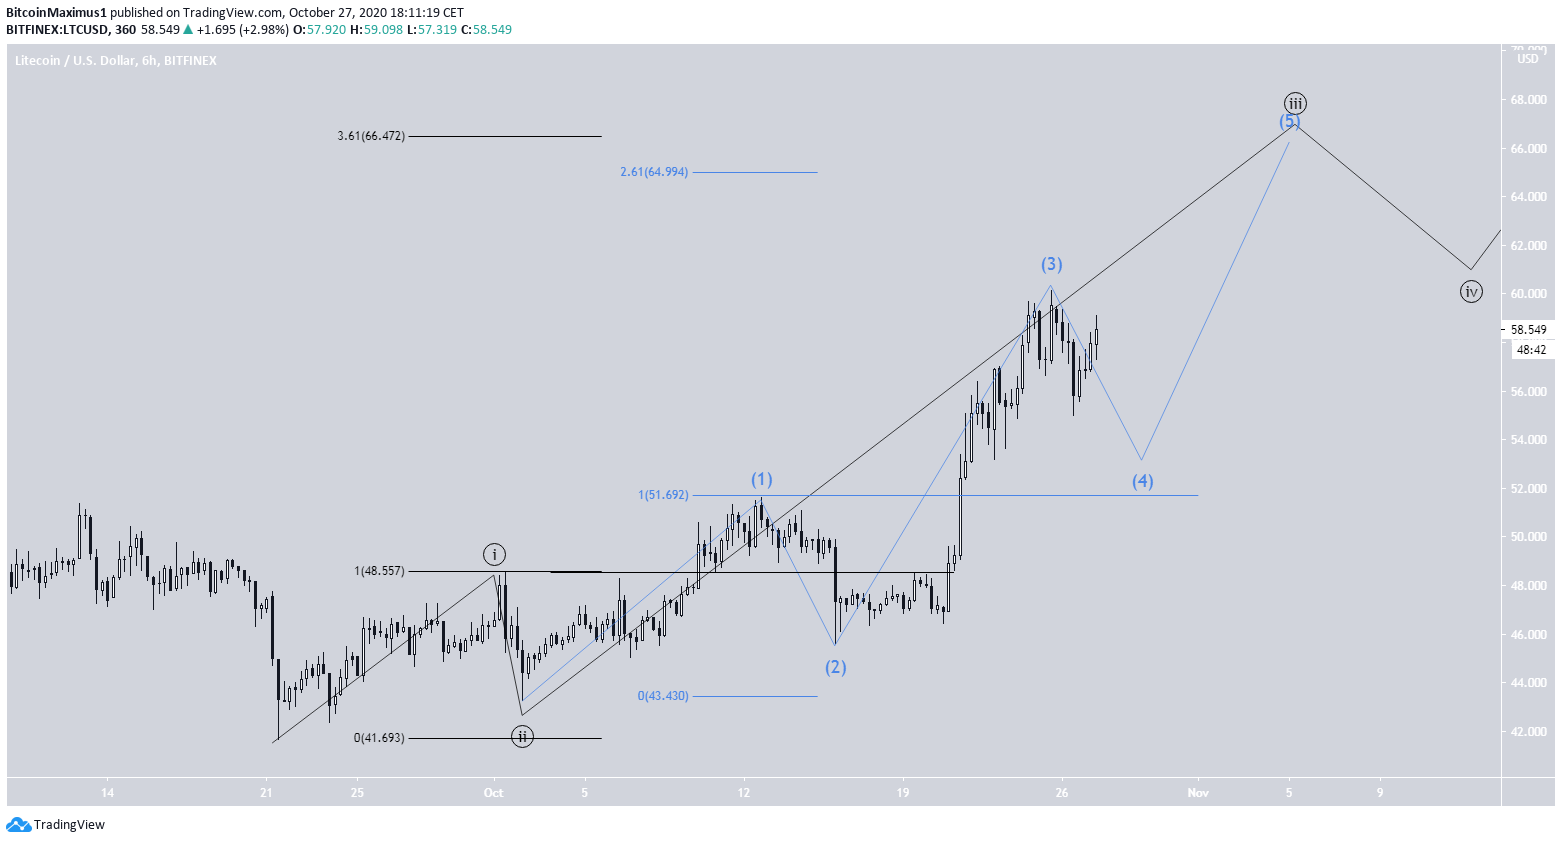 LTC Wave Count